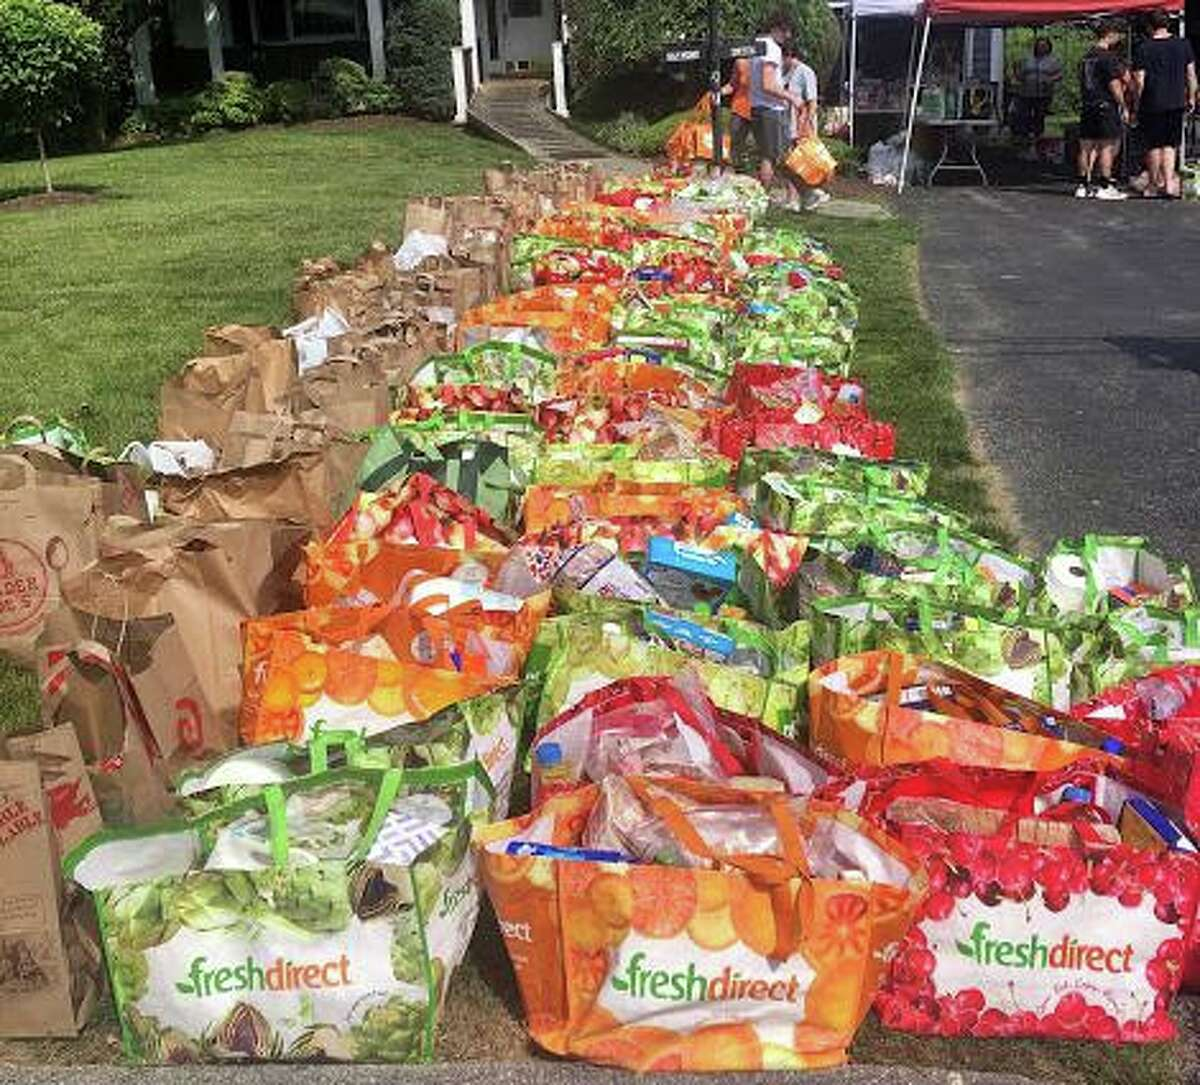 Groceries collected by the grassroots initiative Helping Families, a group of parents who stepped in to feed families of school children who received free and reduced meals in Stamford, Connecticut, in 2020.